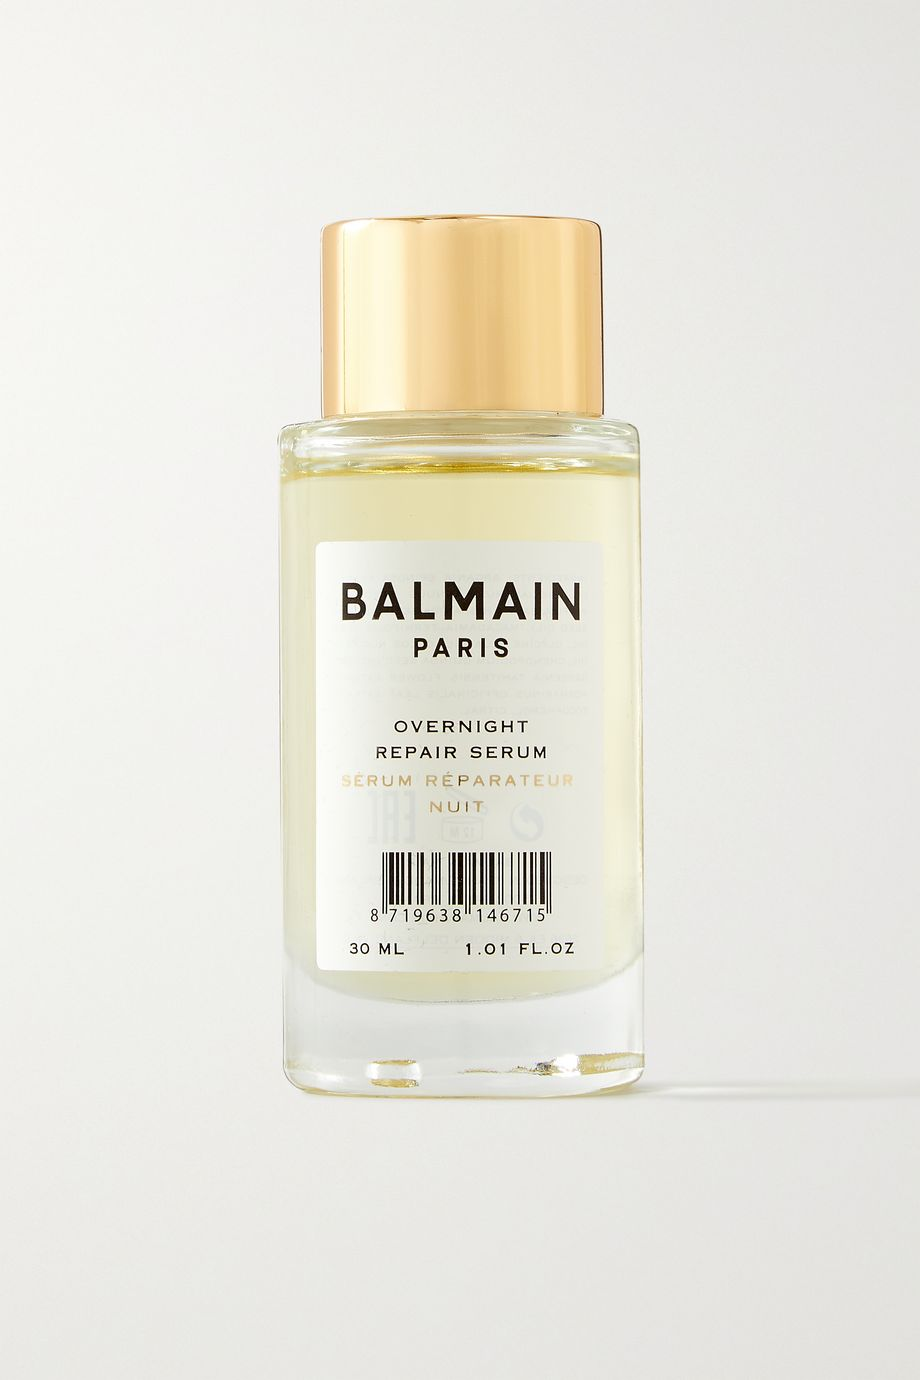 BALMAIN PARIS HAIR COUTURE Overnight Repair Hair Serum, 30ml